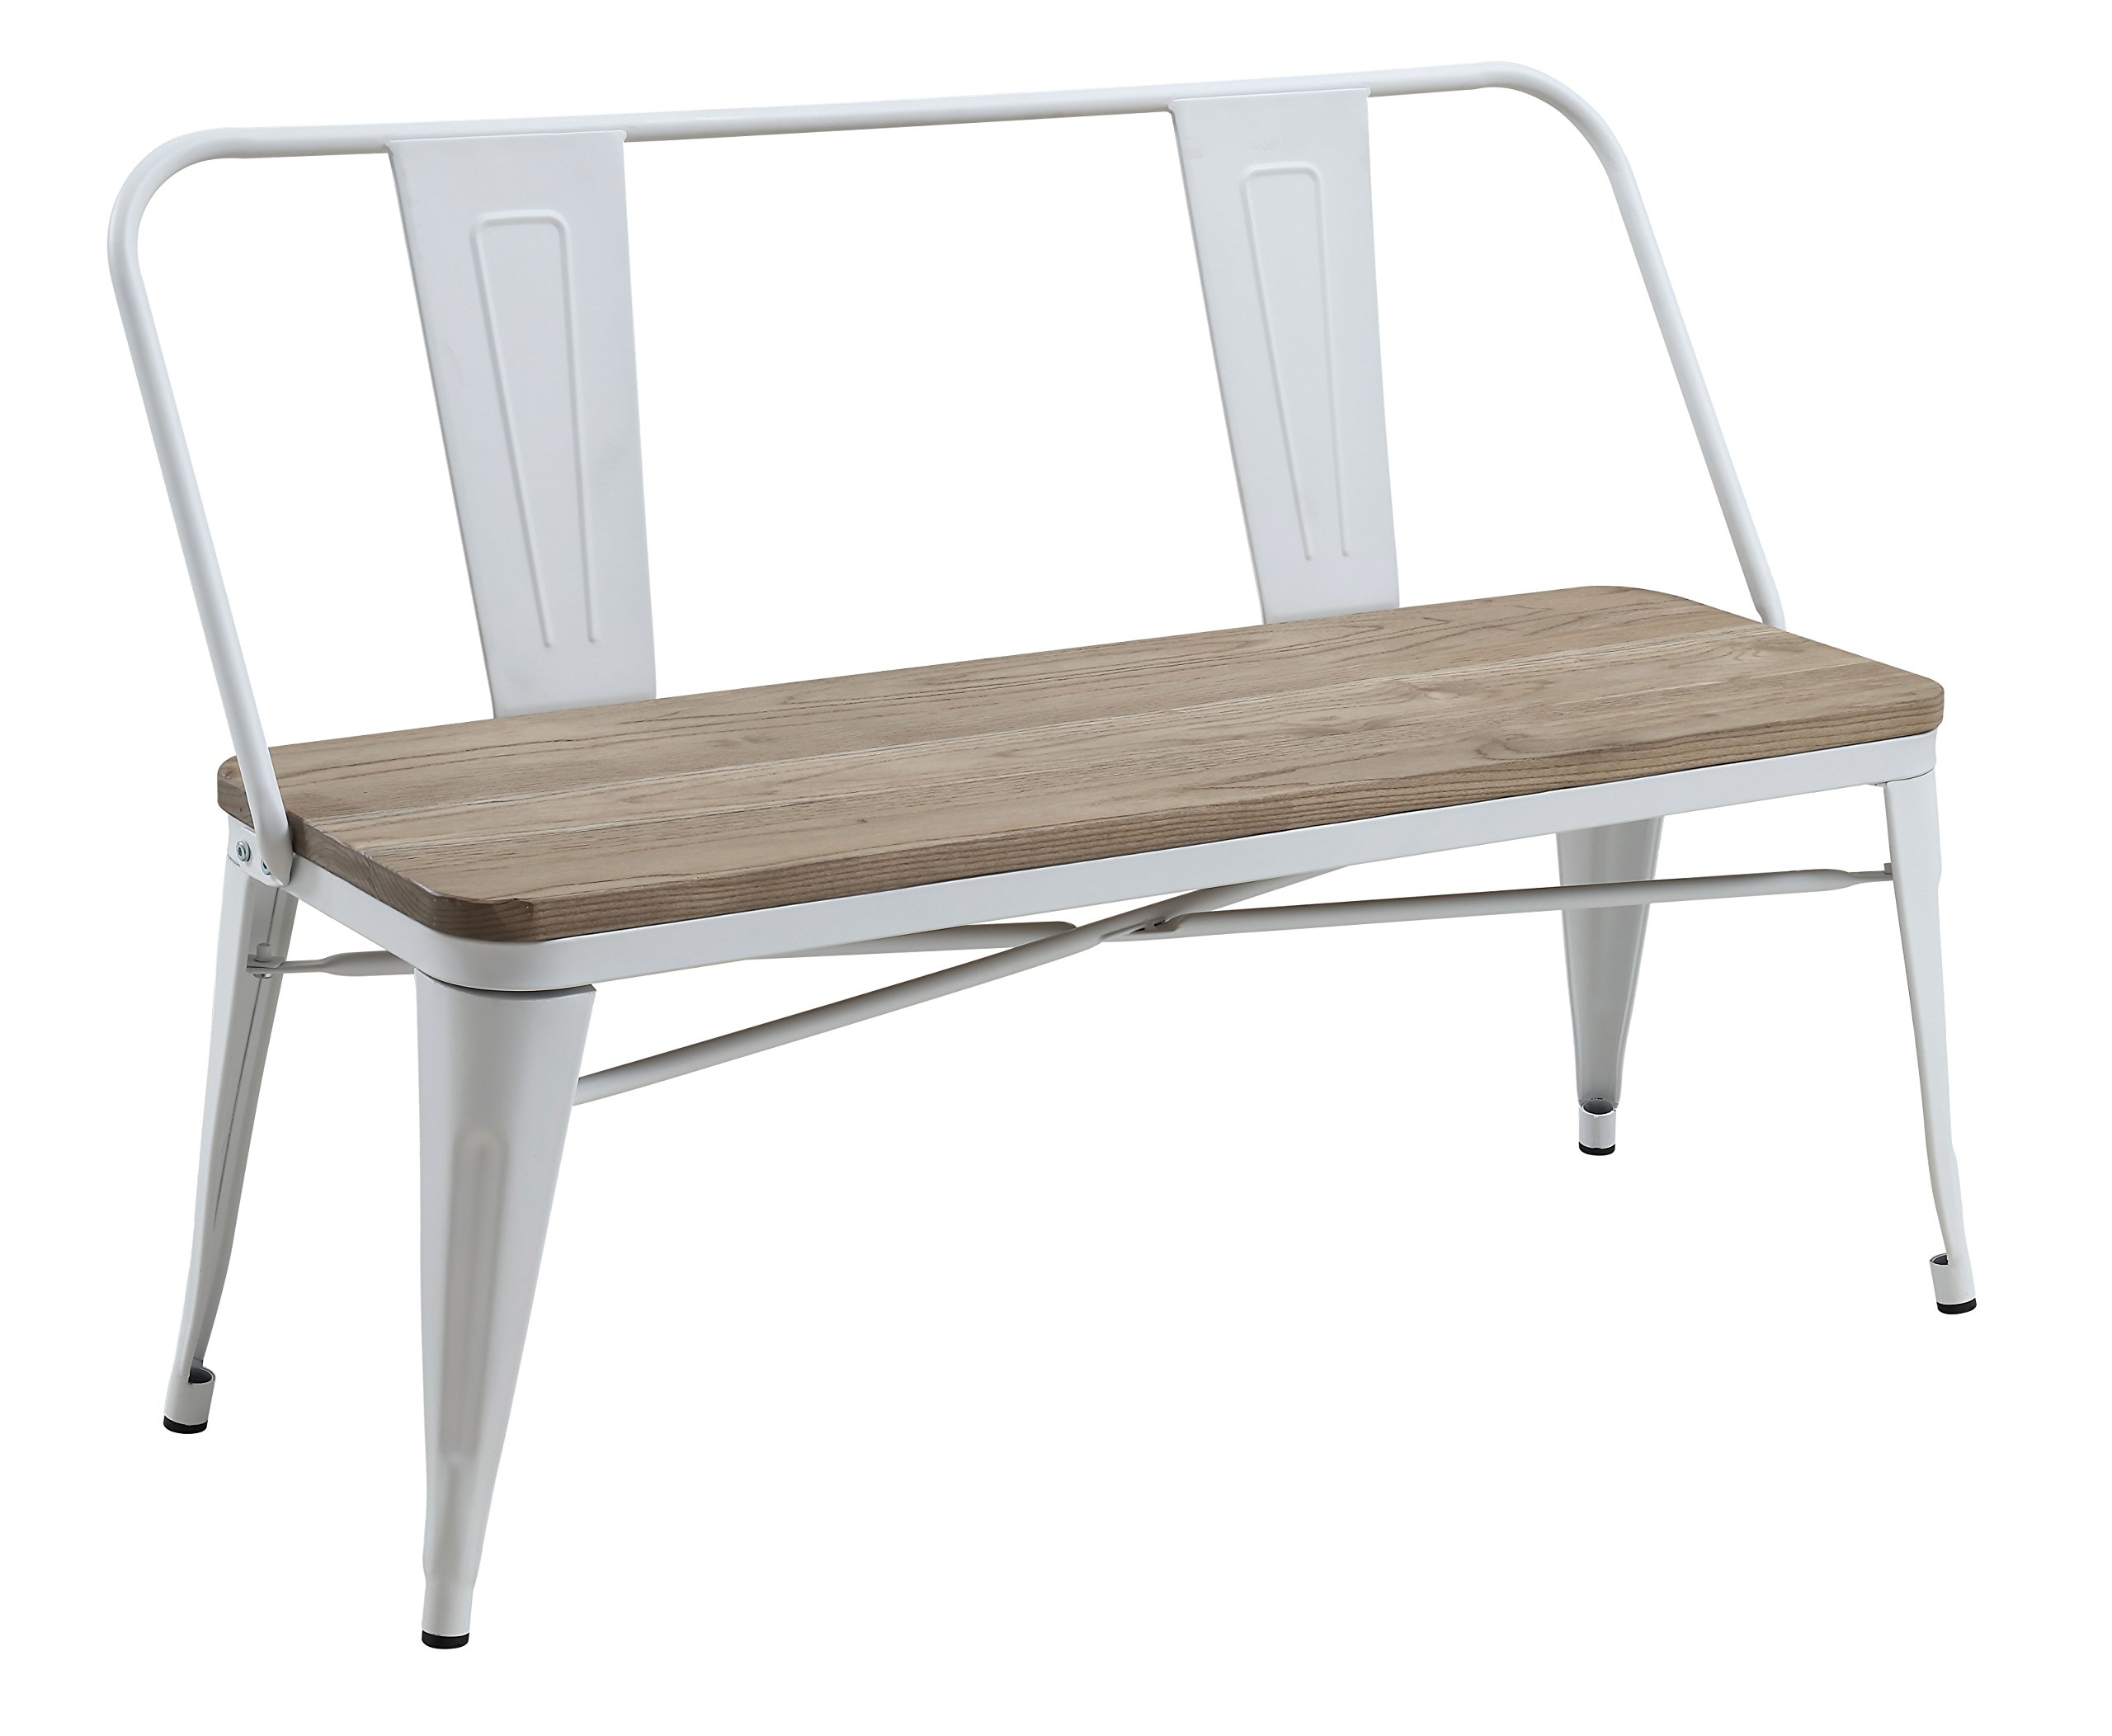 HOMES: Inside + Out IDF-3529WH-BN White Trevin Industrial Bench, by HOMES: Inside + Out